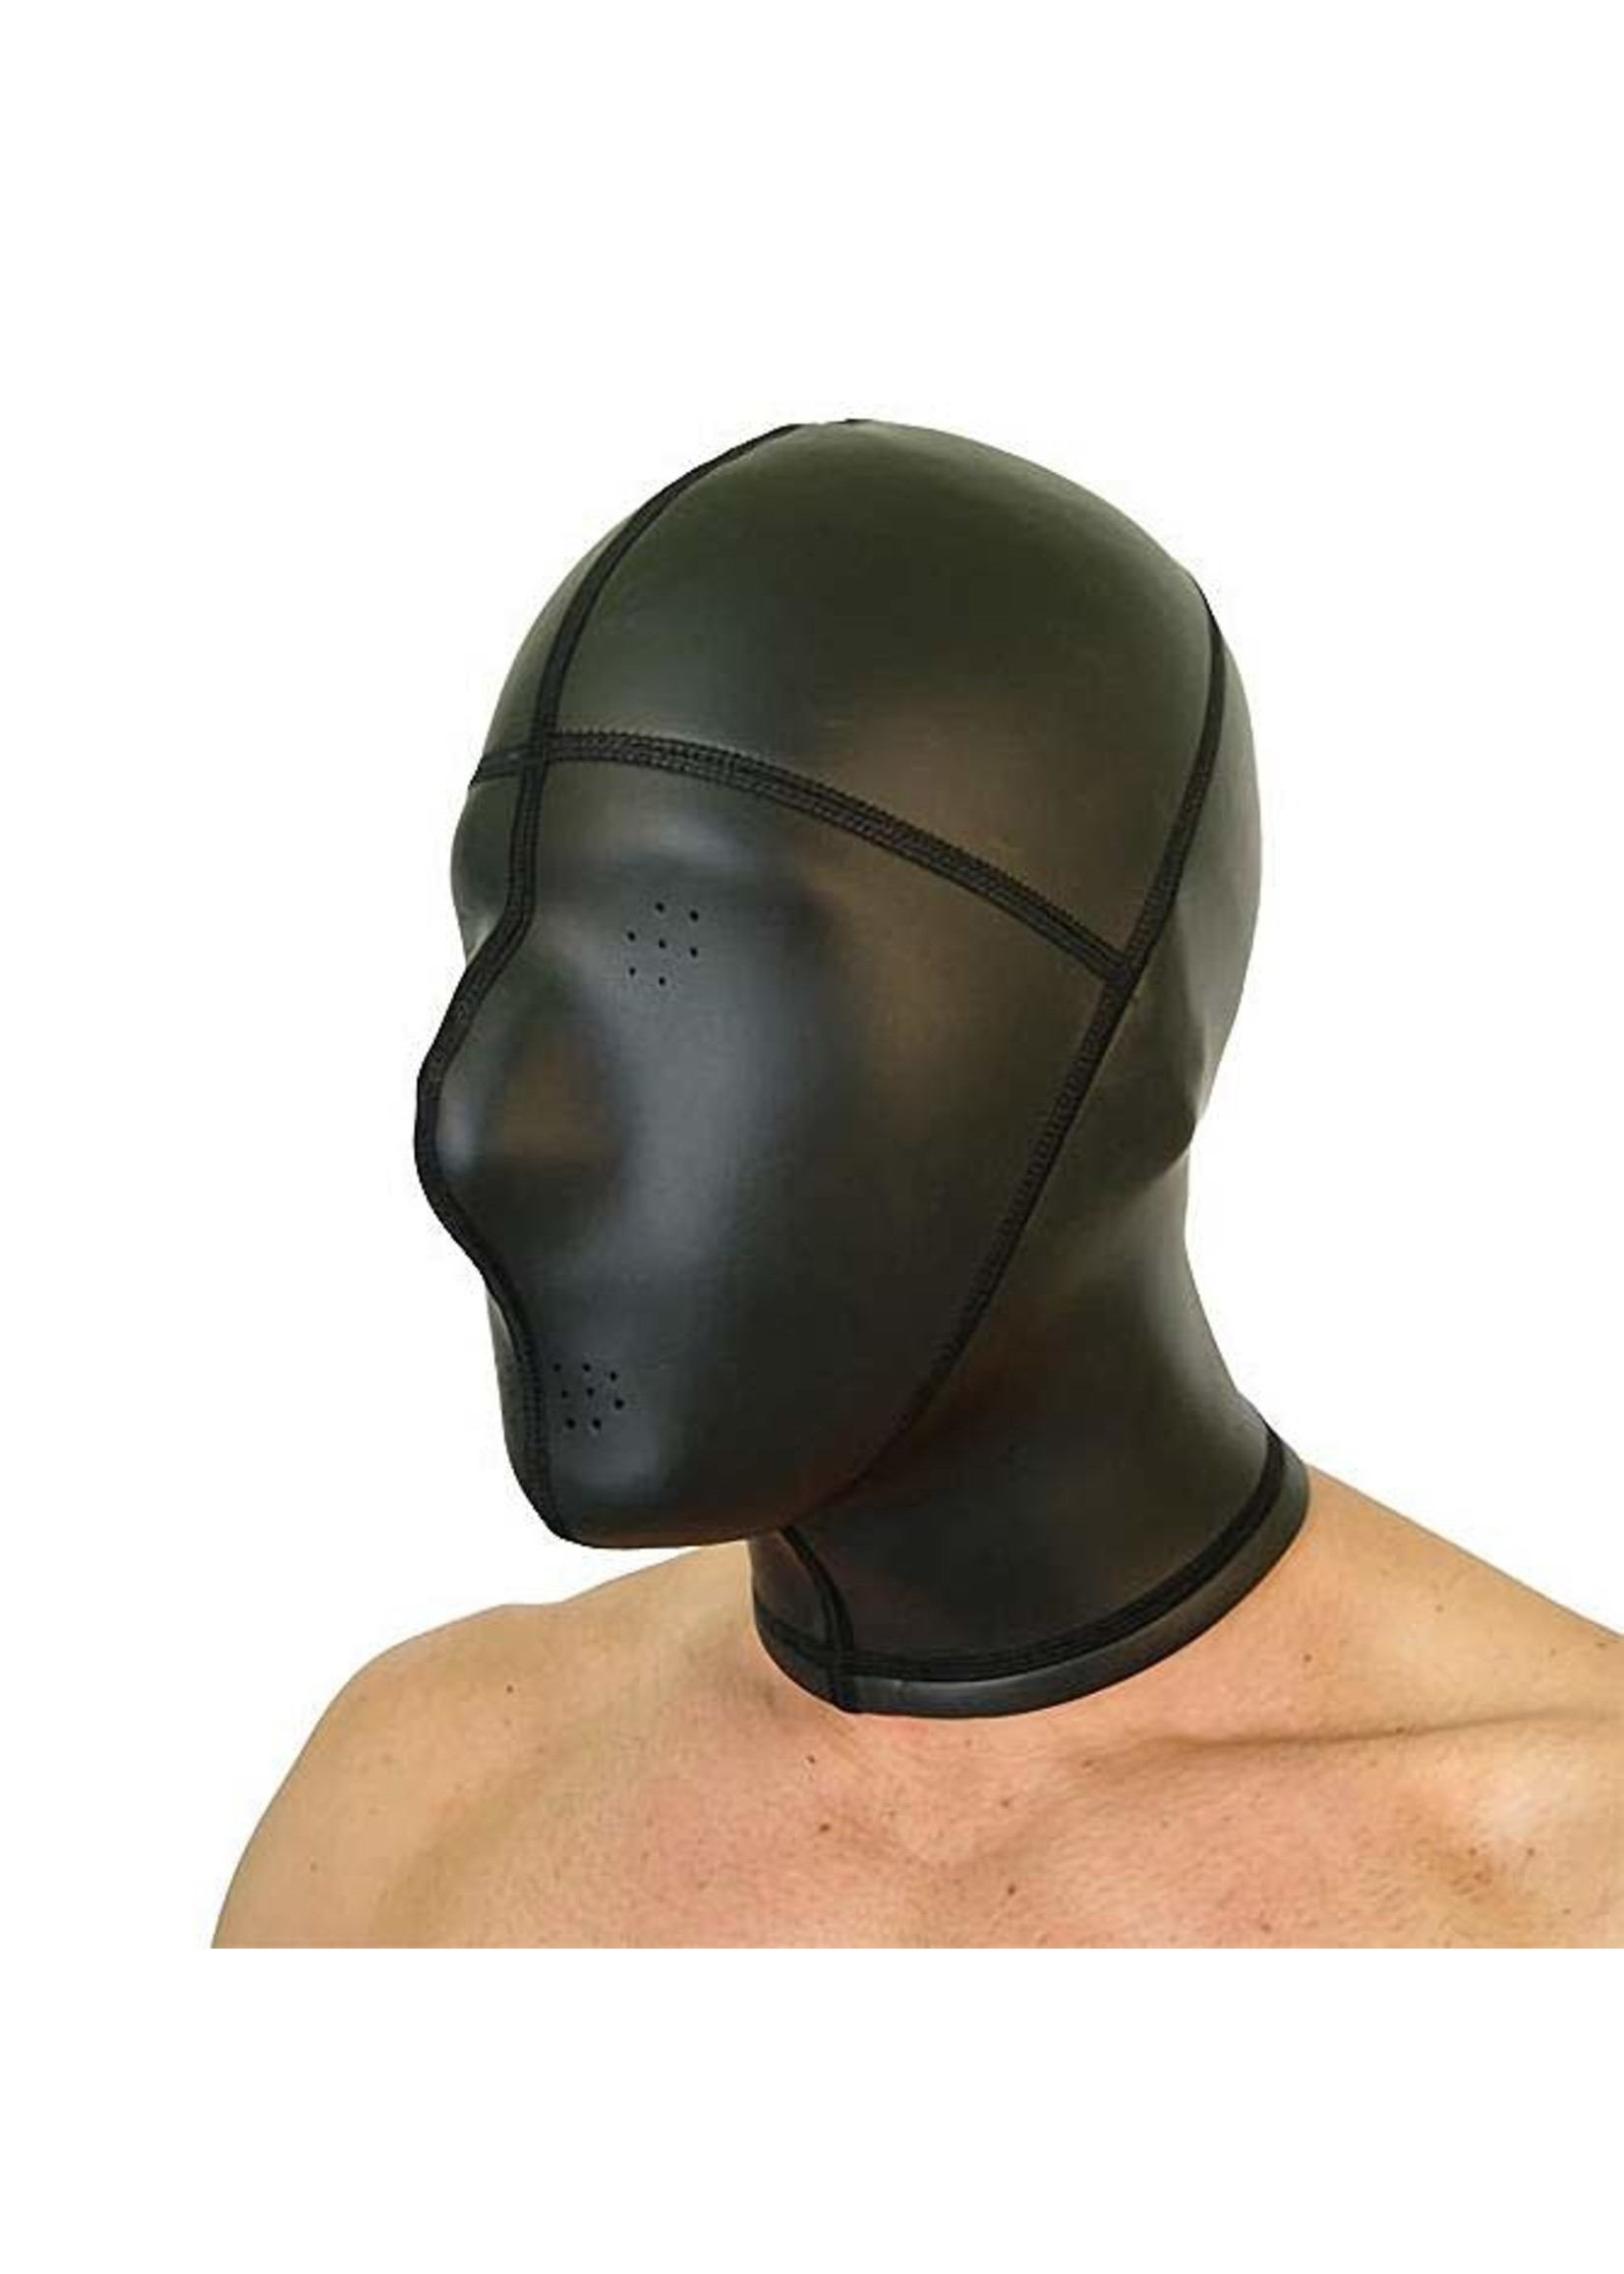 665 Leather 665 Neoprene Panel Hood with Pinhole Eyes and Mouth